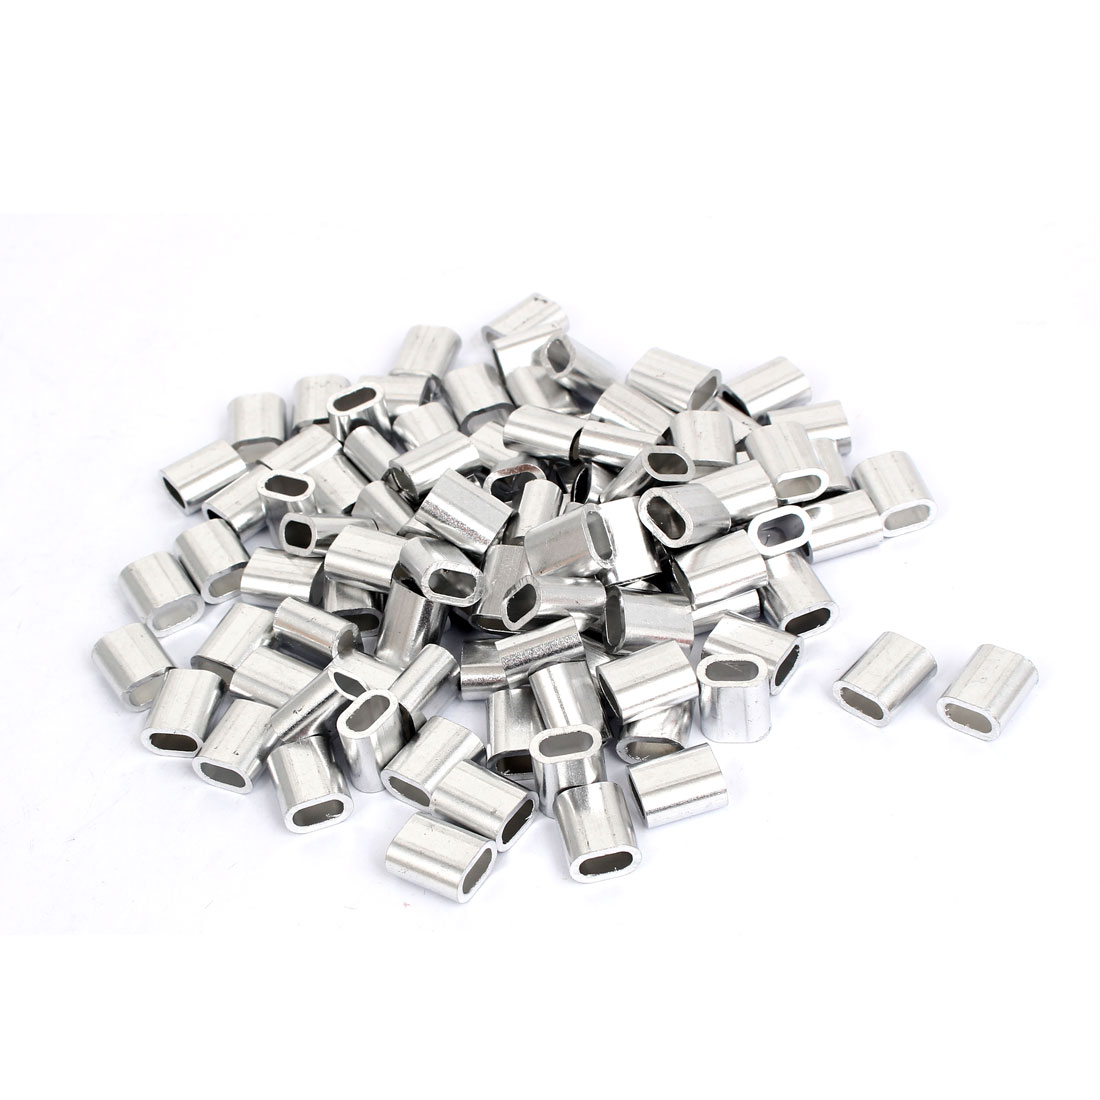 100pcs M4 Oval Aluminum Sleeves Clamps for 4mm Wire Rope Swage Clip